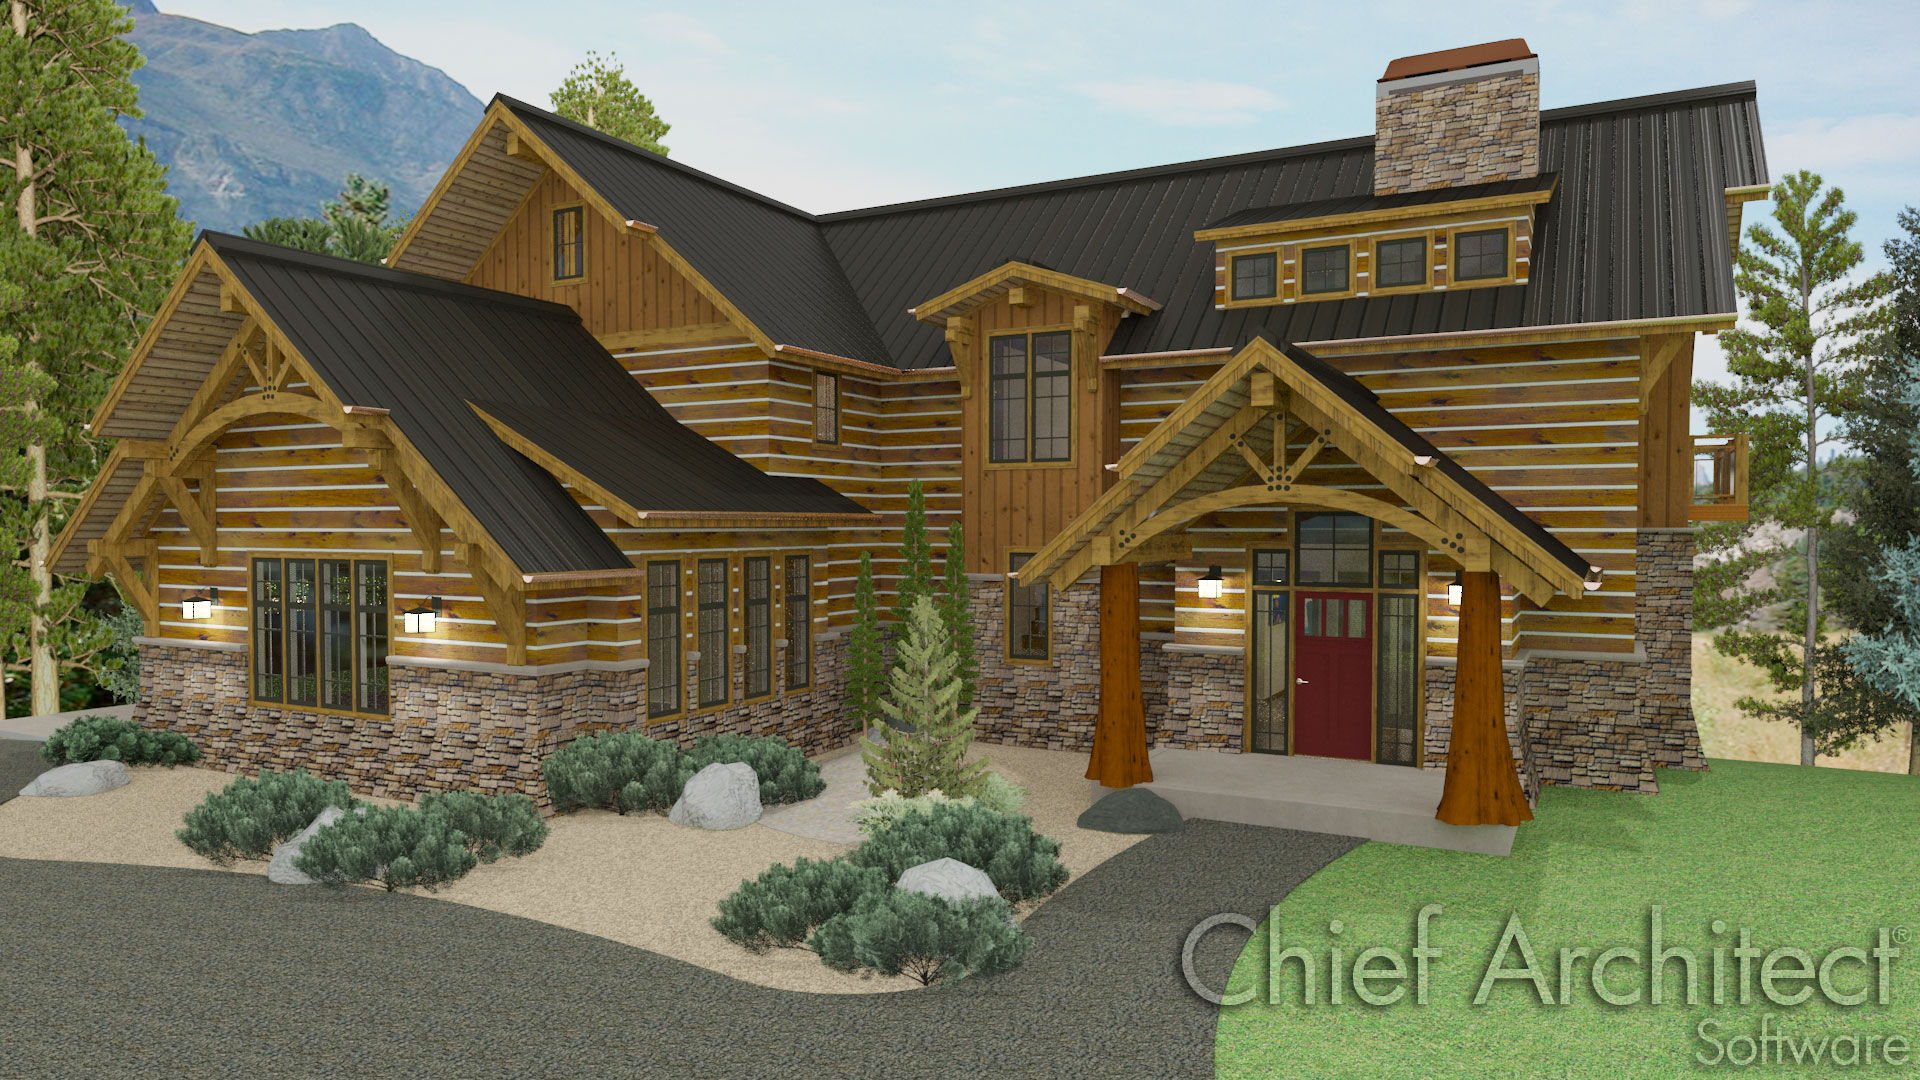 Superbe ... On Timber Frame Construction In The Form Of A Classic Mountain Home  With Shed Dormer, Prow Roof Overhangs, Custom Trusses, Log Siding With  Chinking, ...